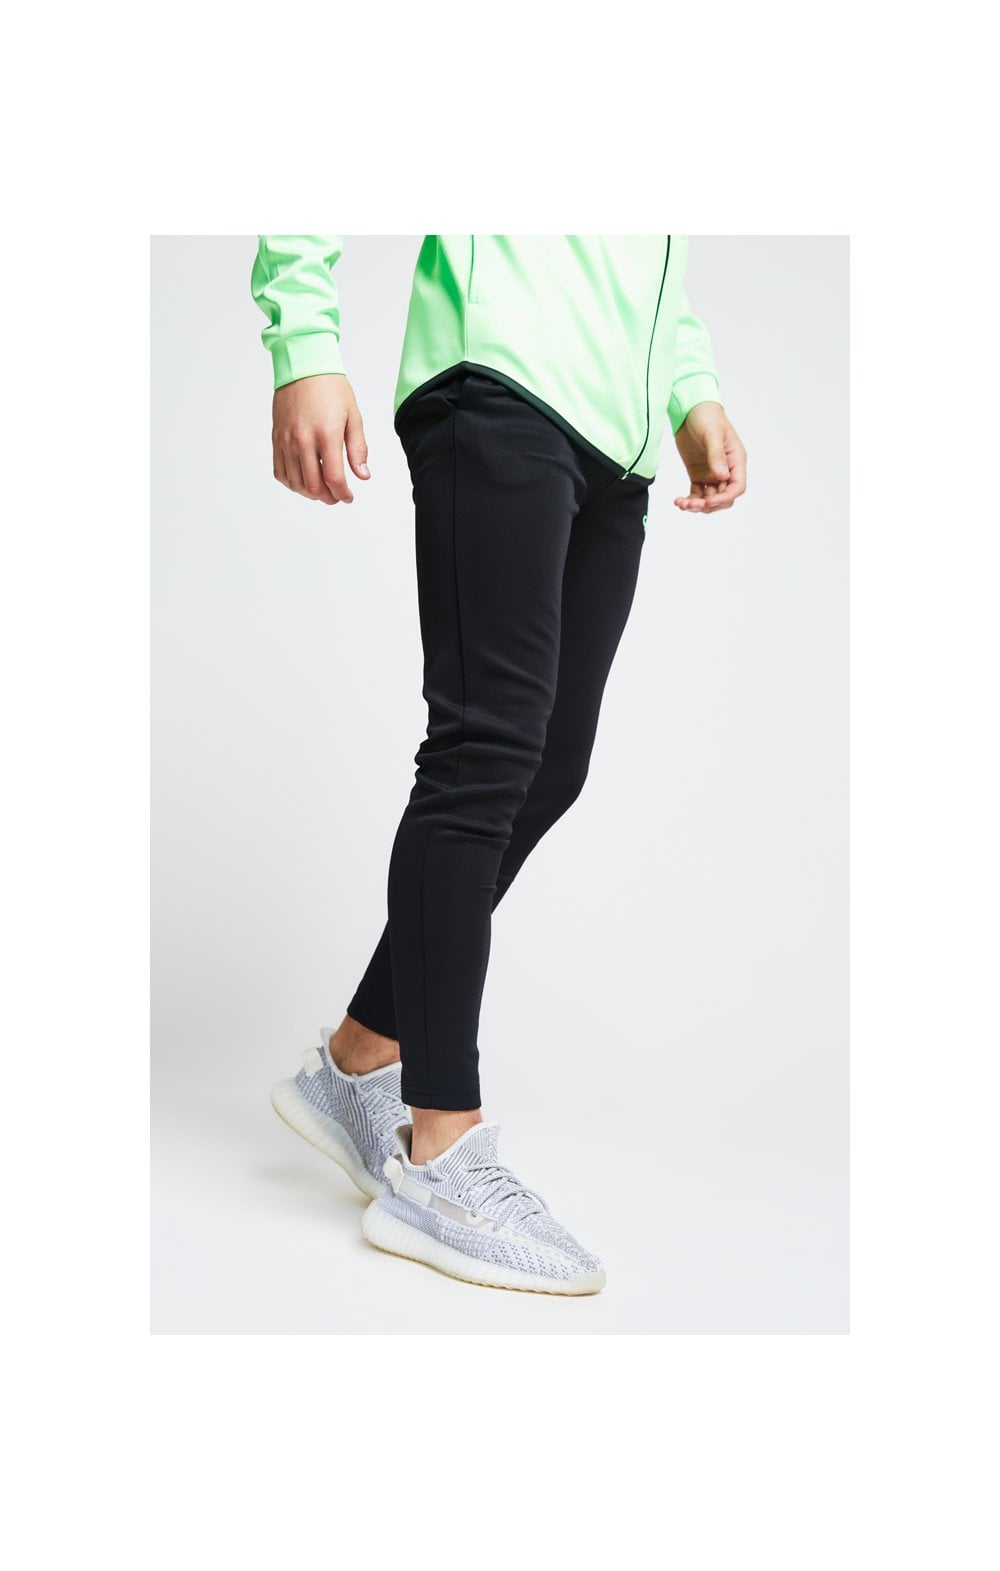 Illusive London Athlete Pants – Black & Neon Green (2)